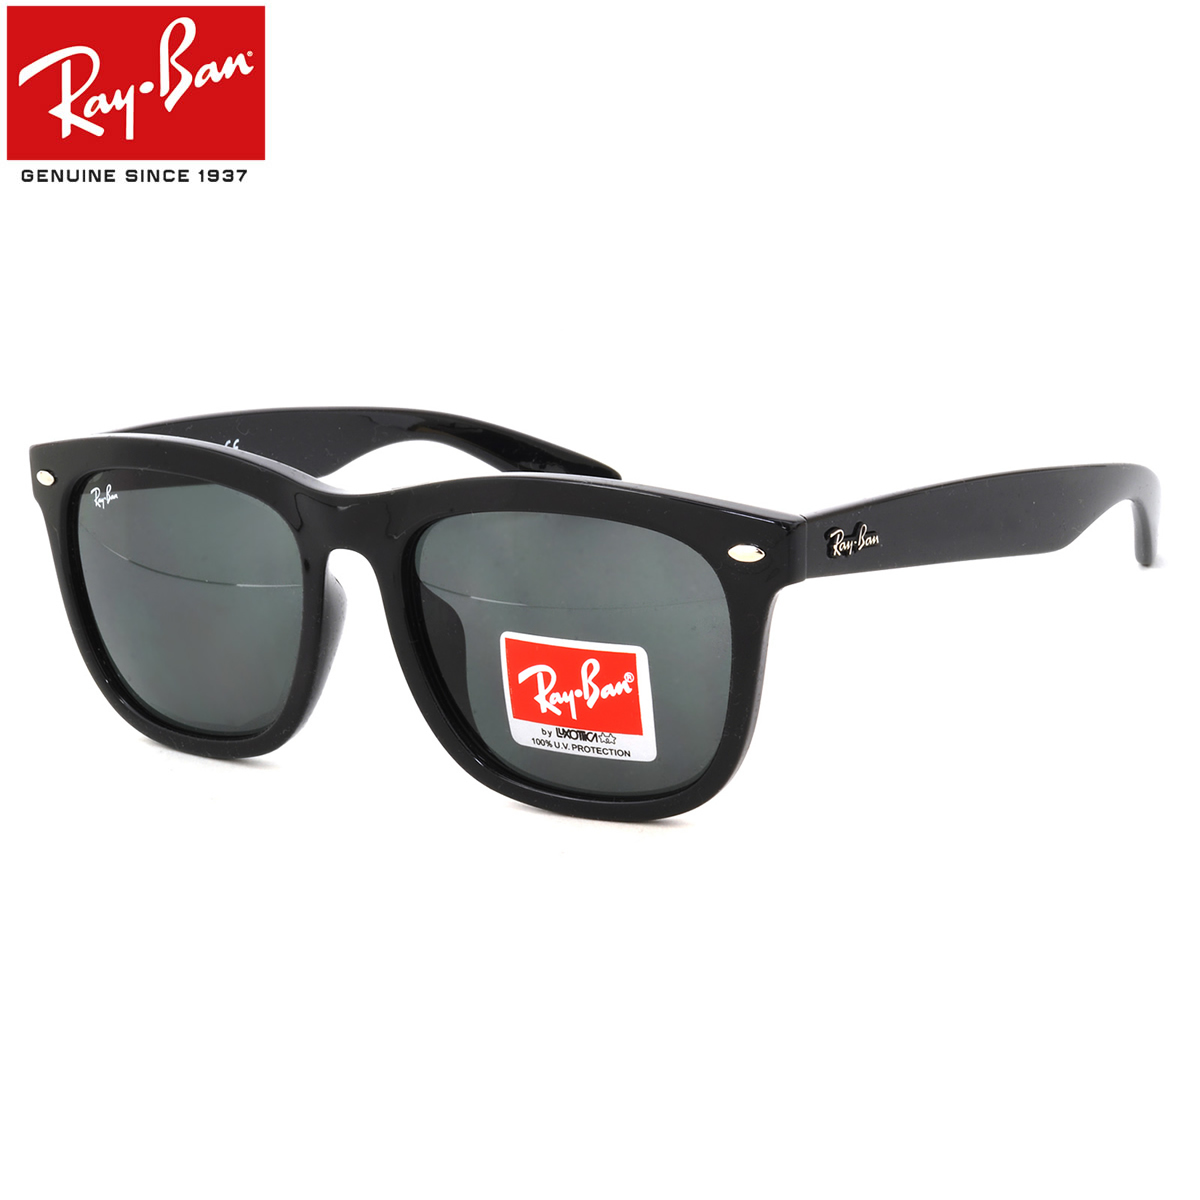 e5d69b0178a Nowadays feel big shape type of Ray-Ban sunglasses. Big lens parts cover  the face